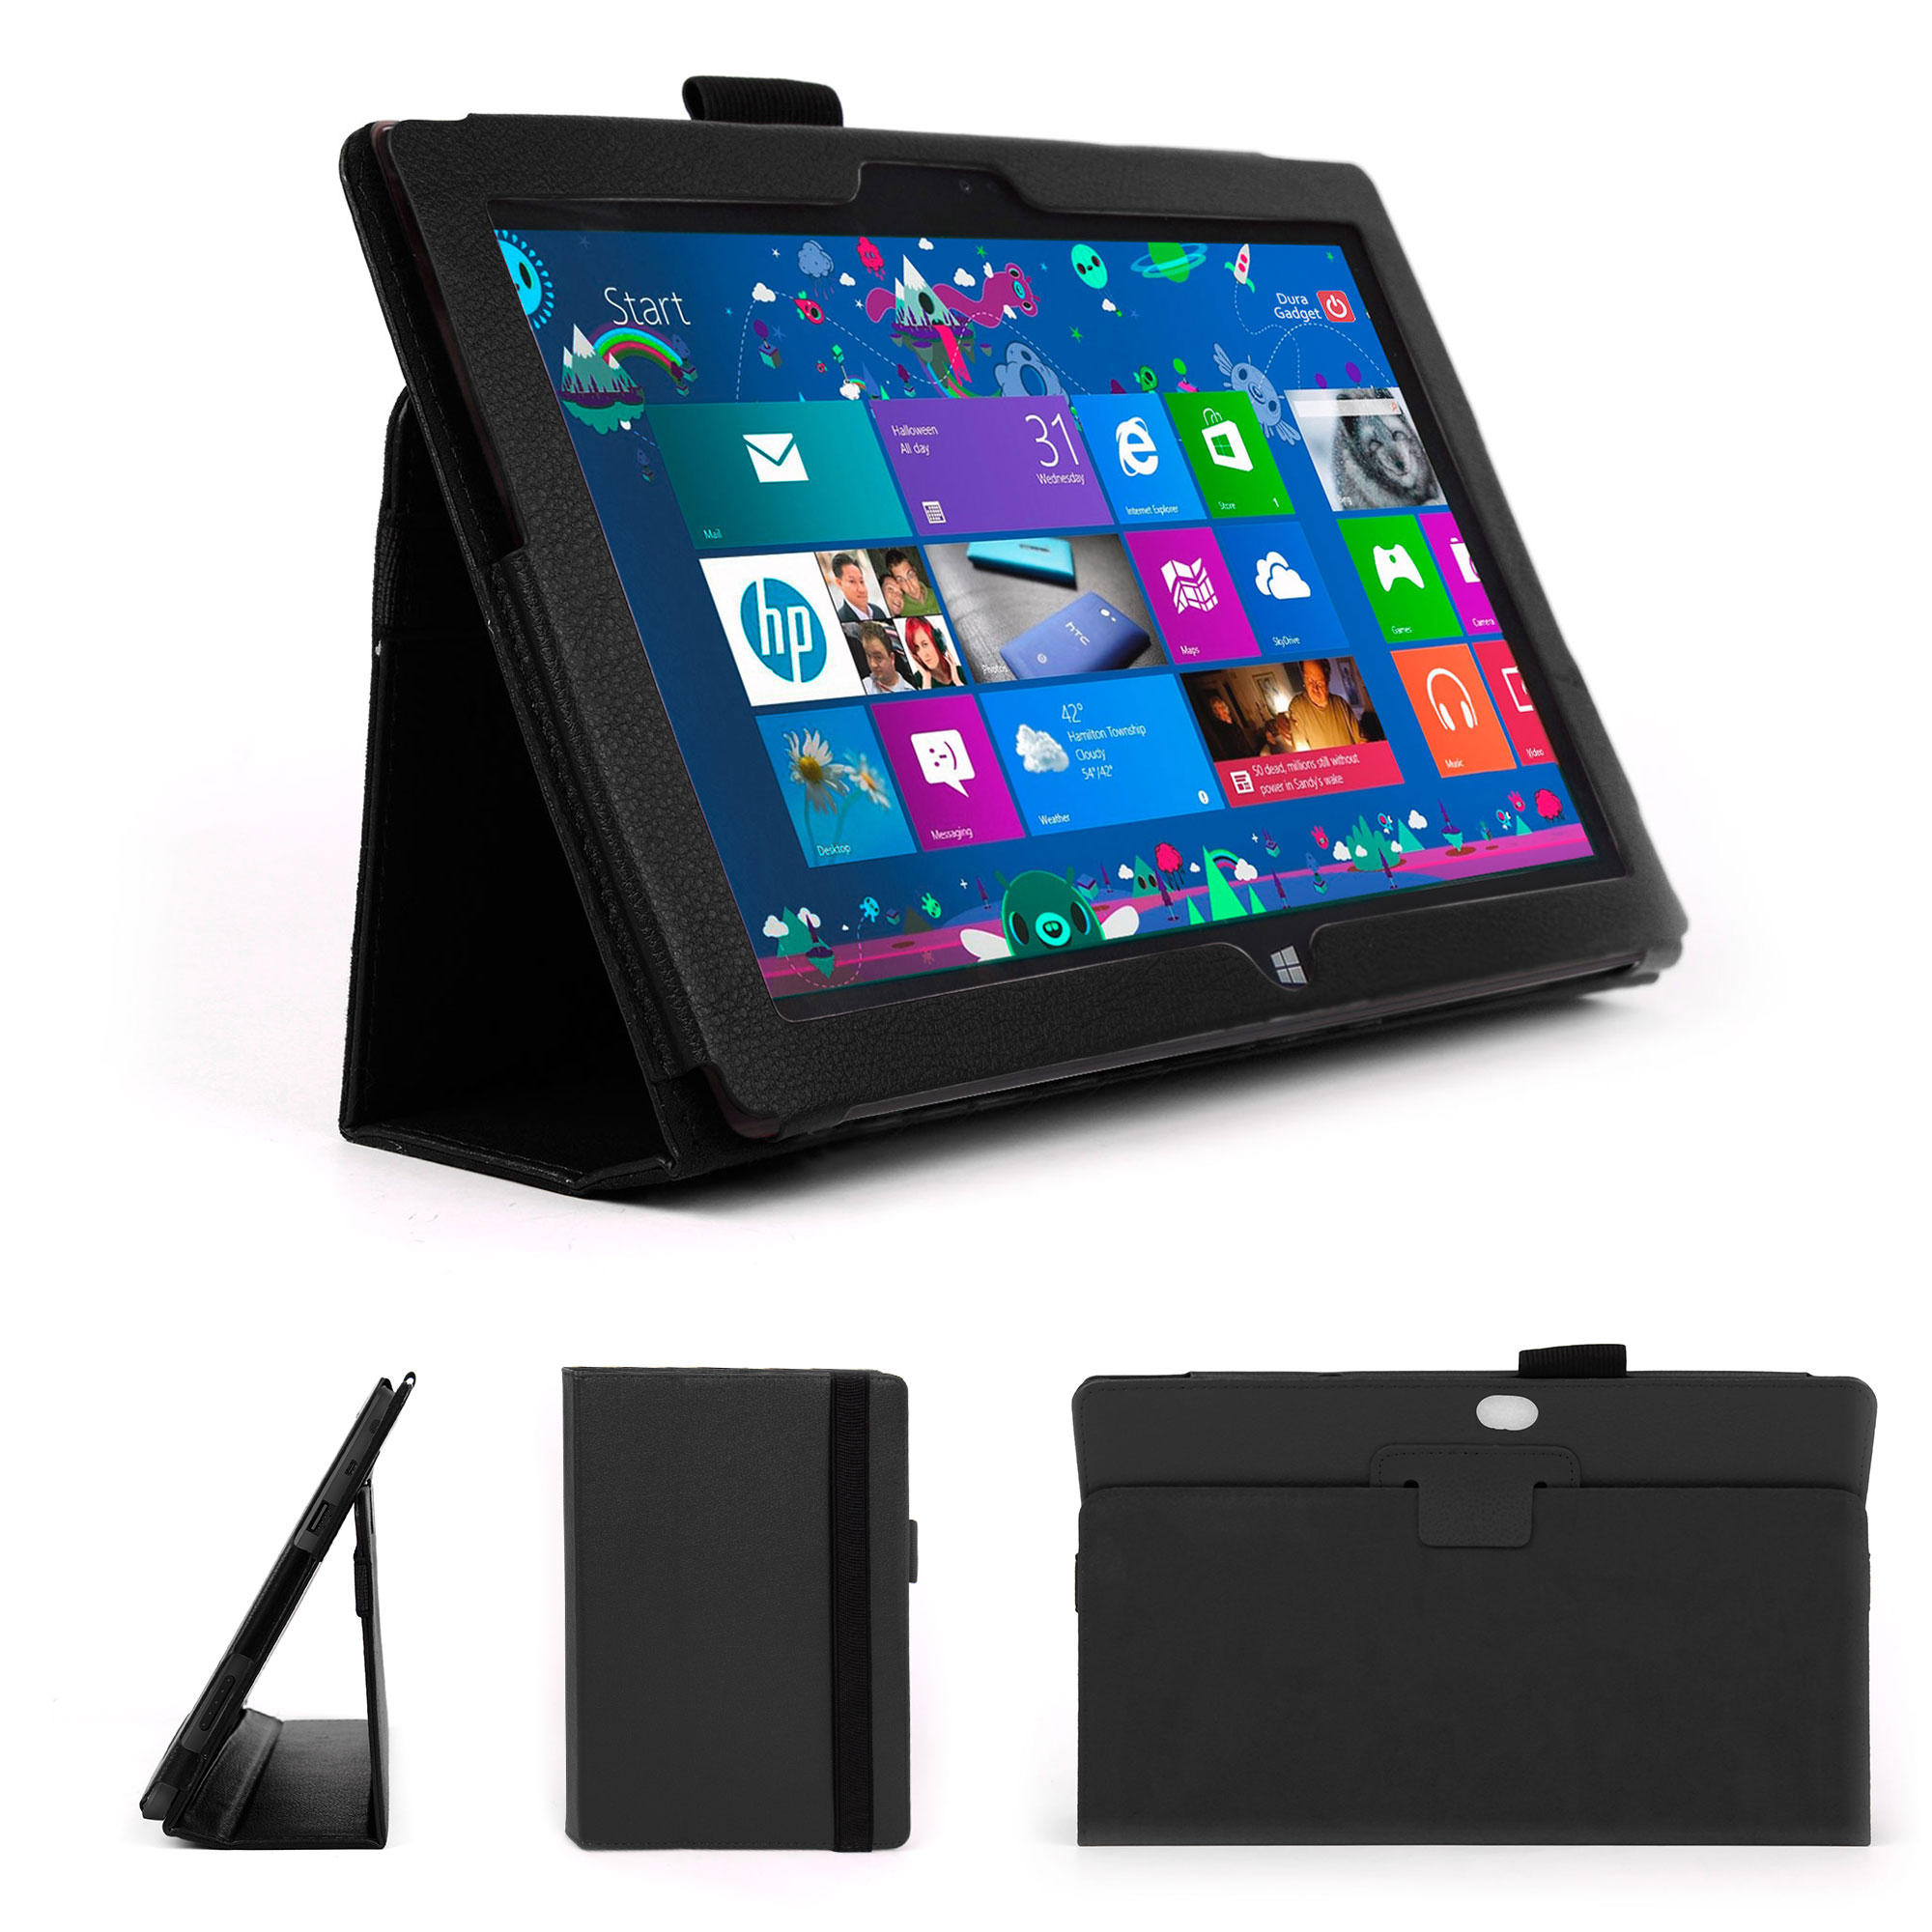 schutzh lle f r microsoft surface windows rt tablet. Black Bedroom Furniture Sets. Home Design Ideas